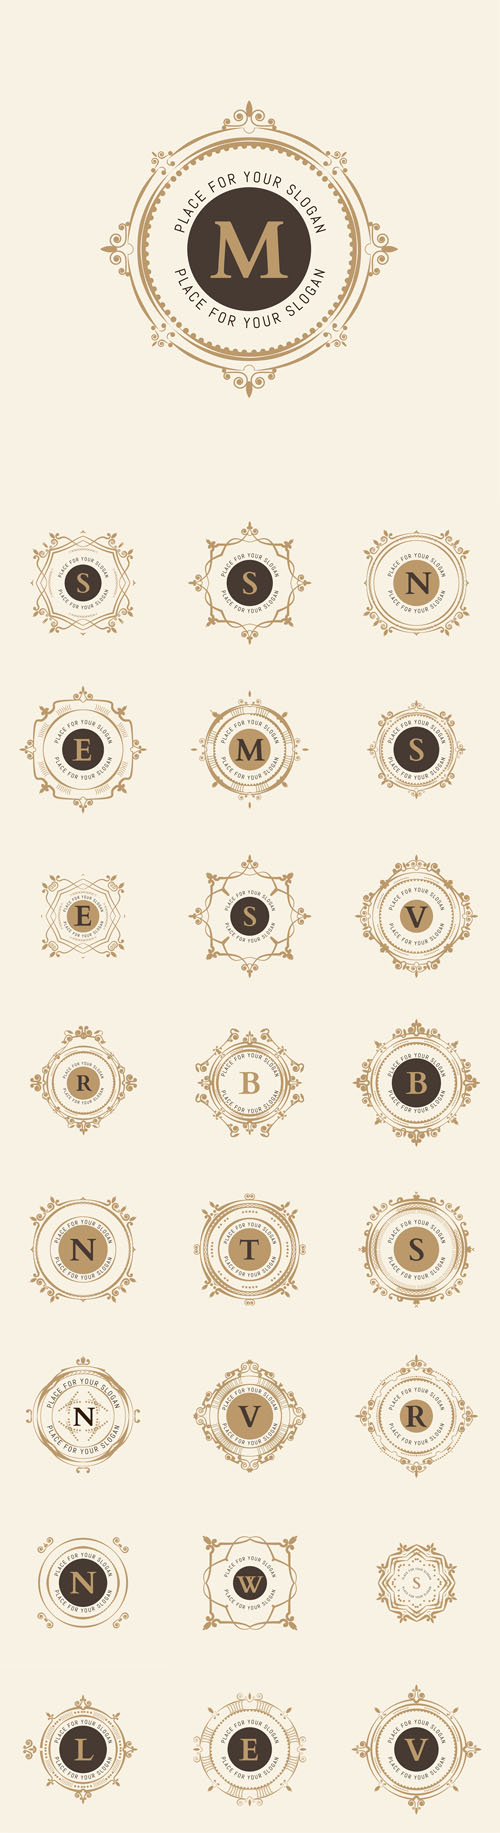 Vector The letters. Flourishes Calligraphic Monogram Emblem Templates